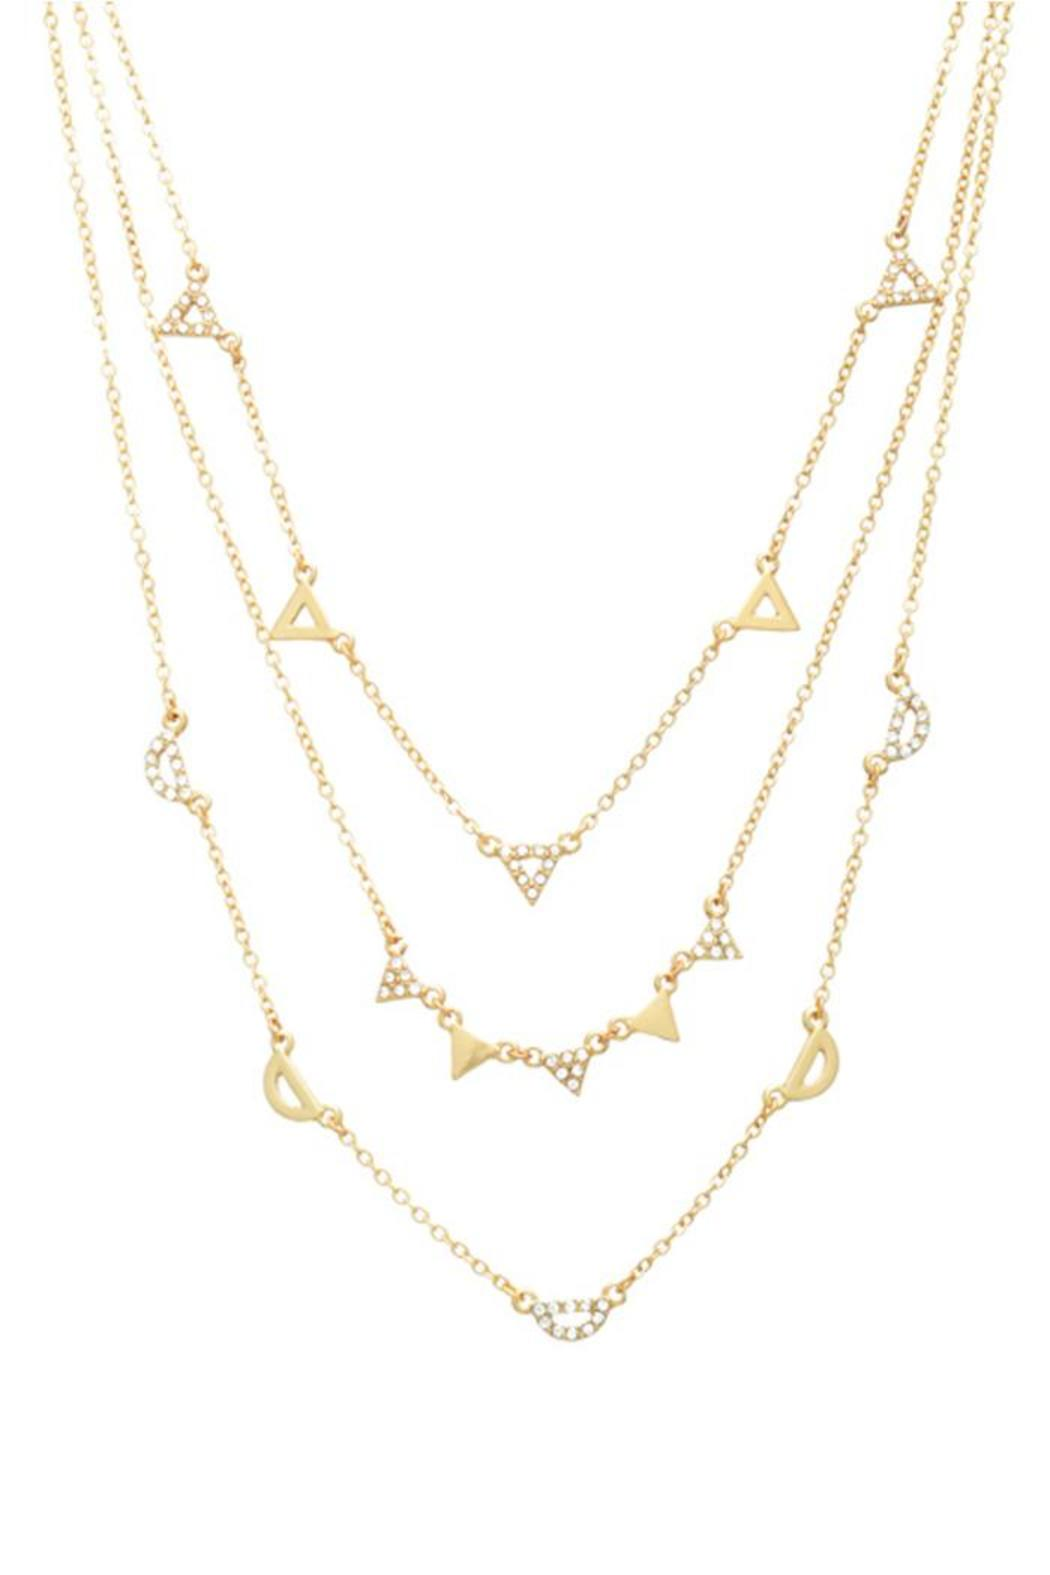 Wild Lilies Jewelry  Gold Layered Necklace - Main Image